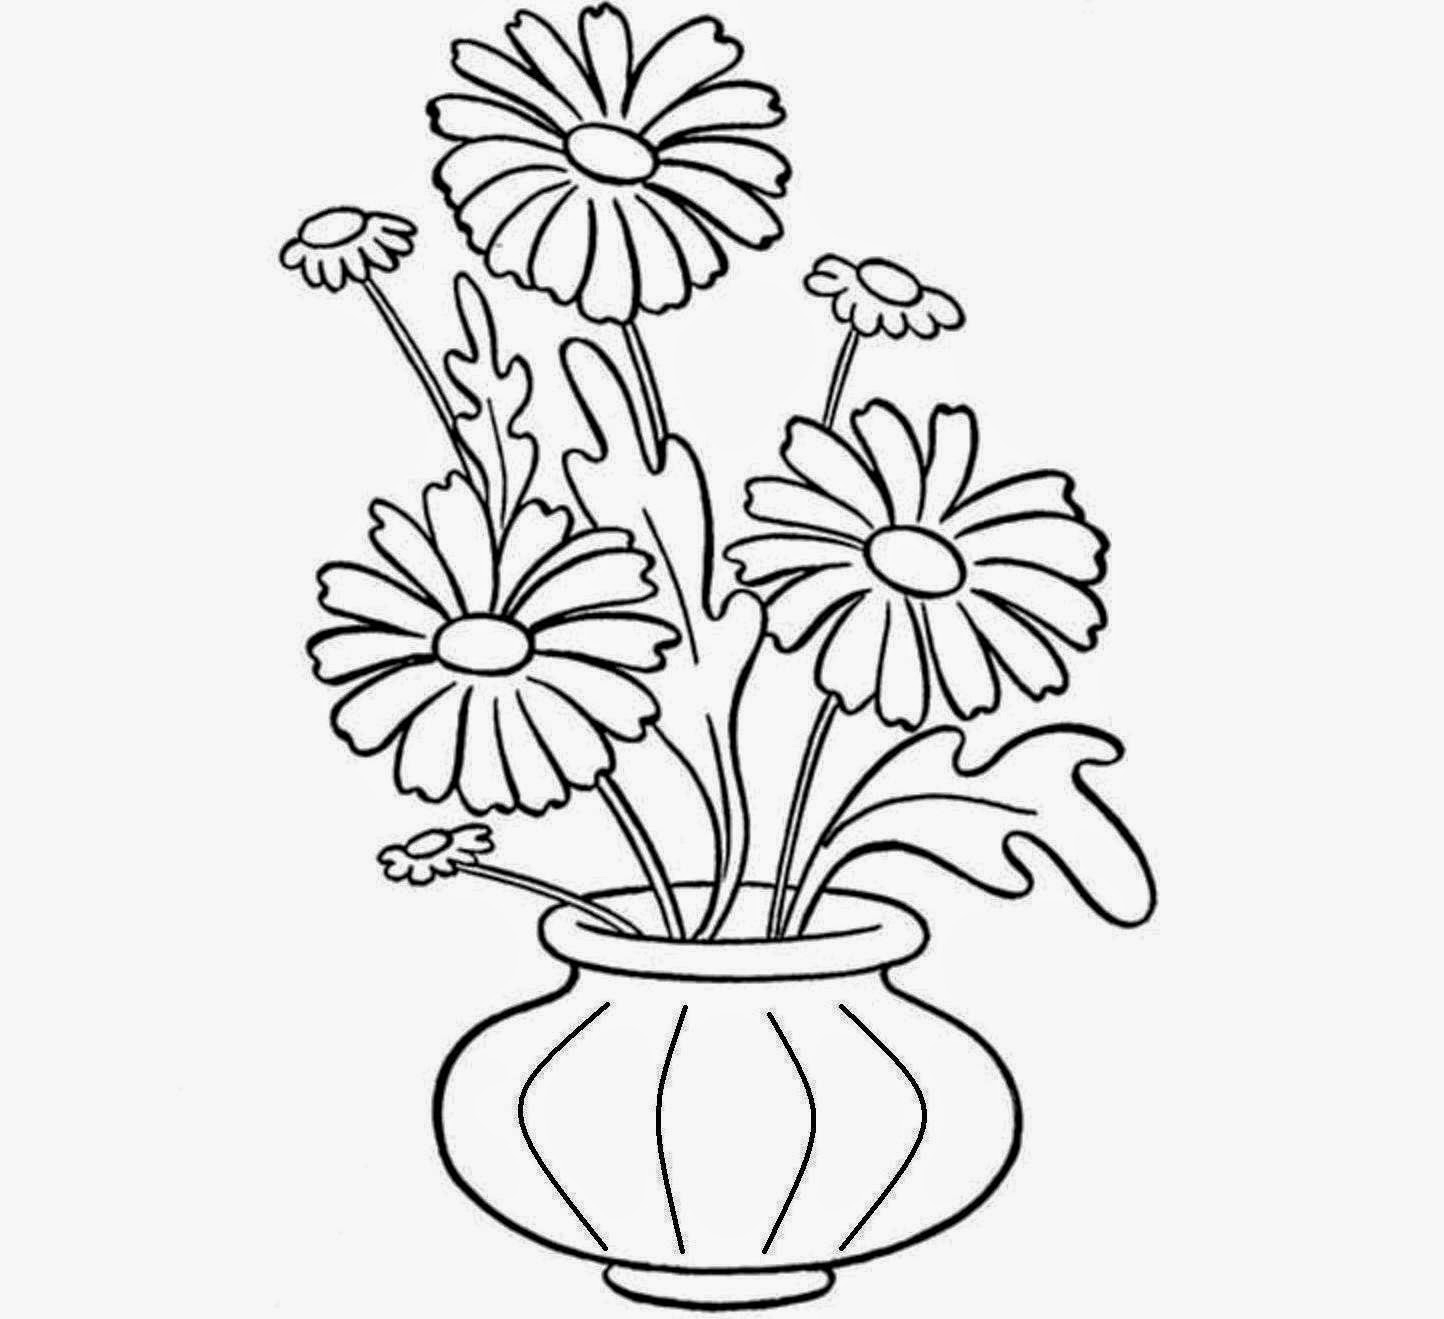 how to draw a bouquet of flowers in a vase royalty free flower vase white background clip art vector bouquet vase a flowers draw a how of to in